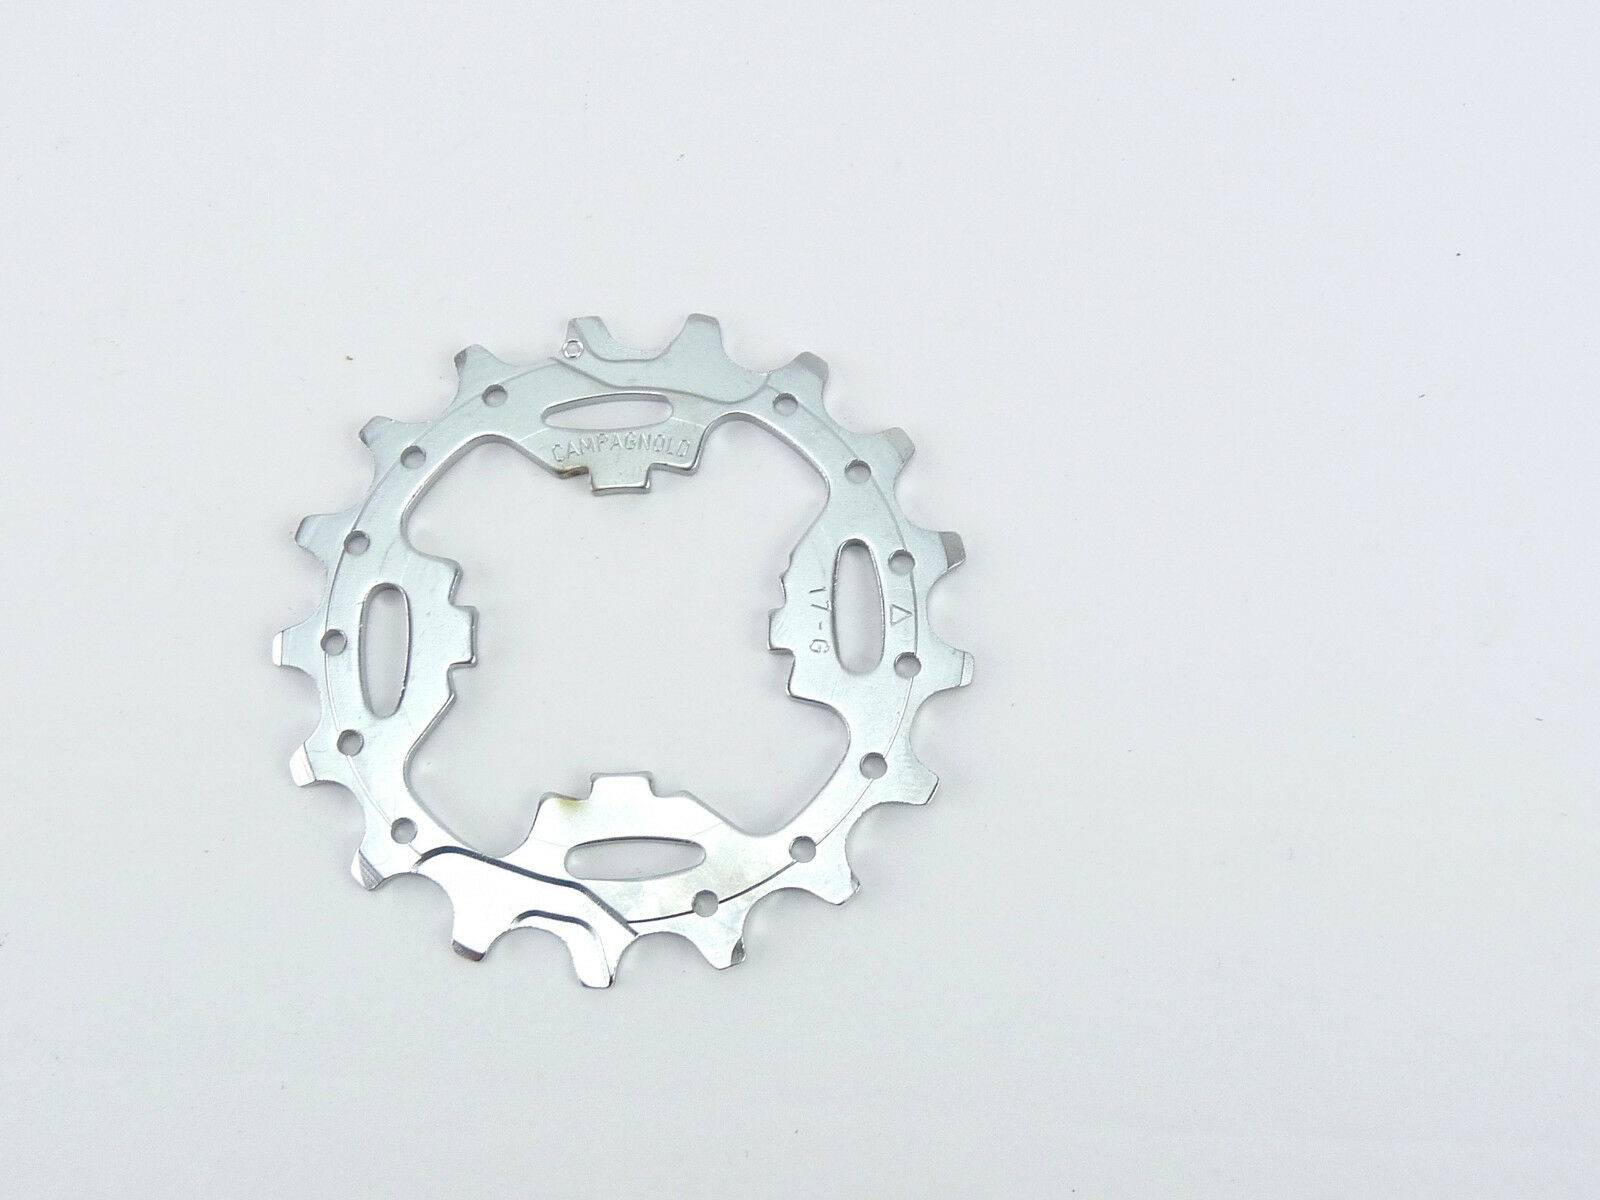 Campagnolo 10 speed Cassette Cog 17t Ultra Drive  Racing Bike NOS  cheapest price